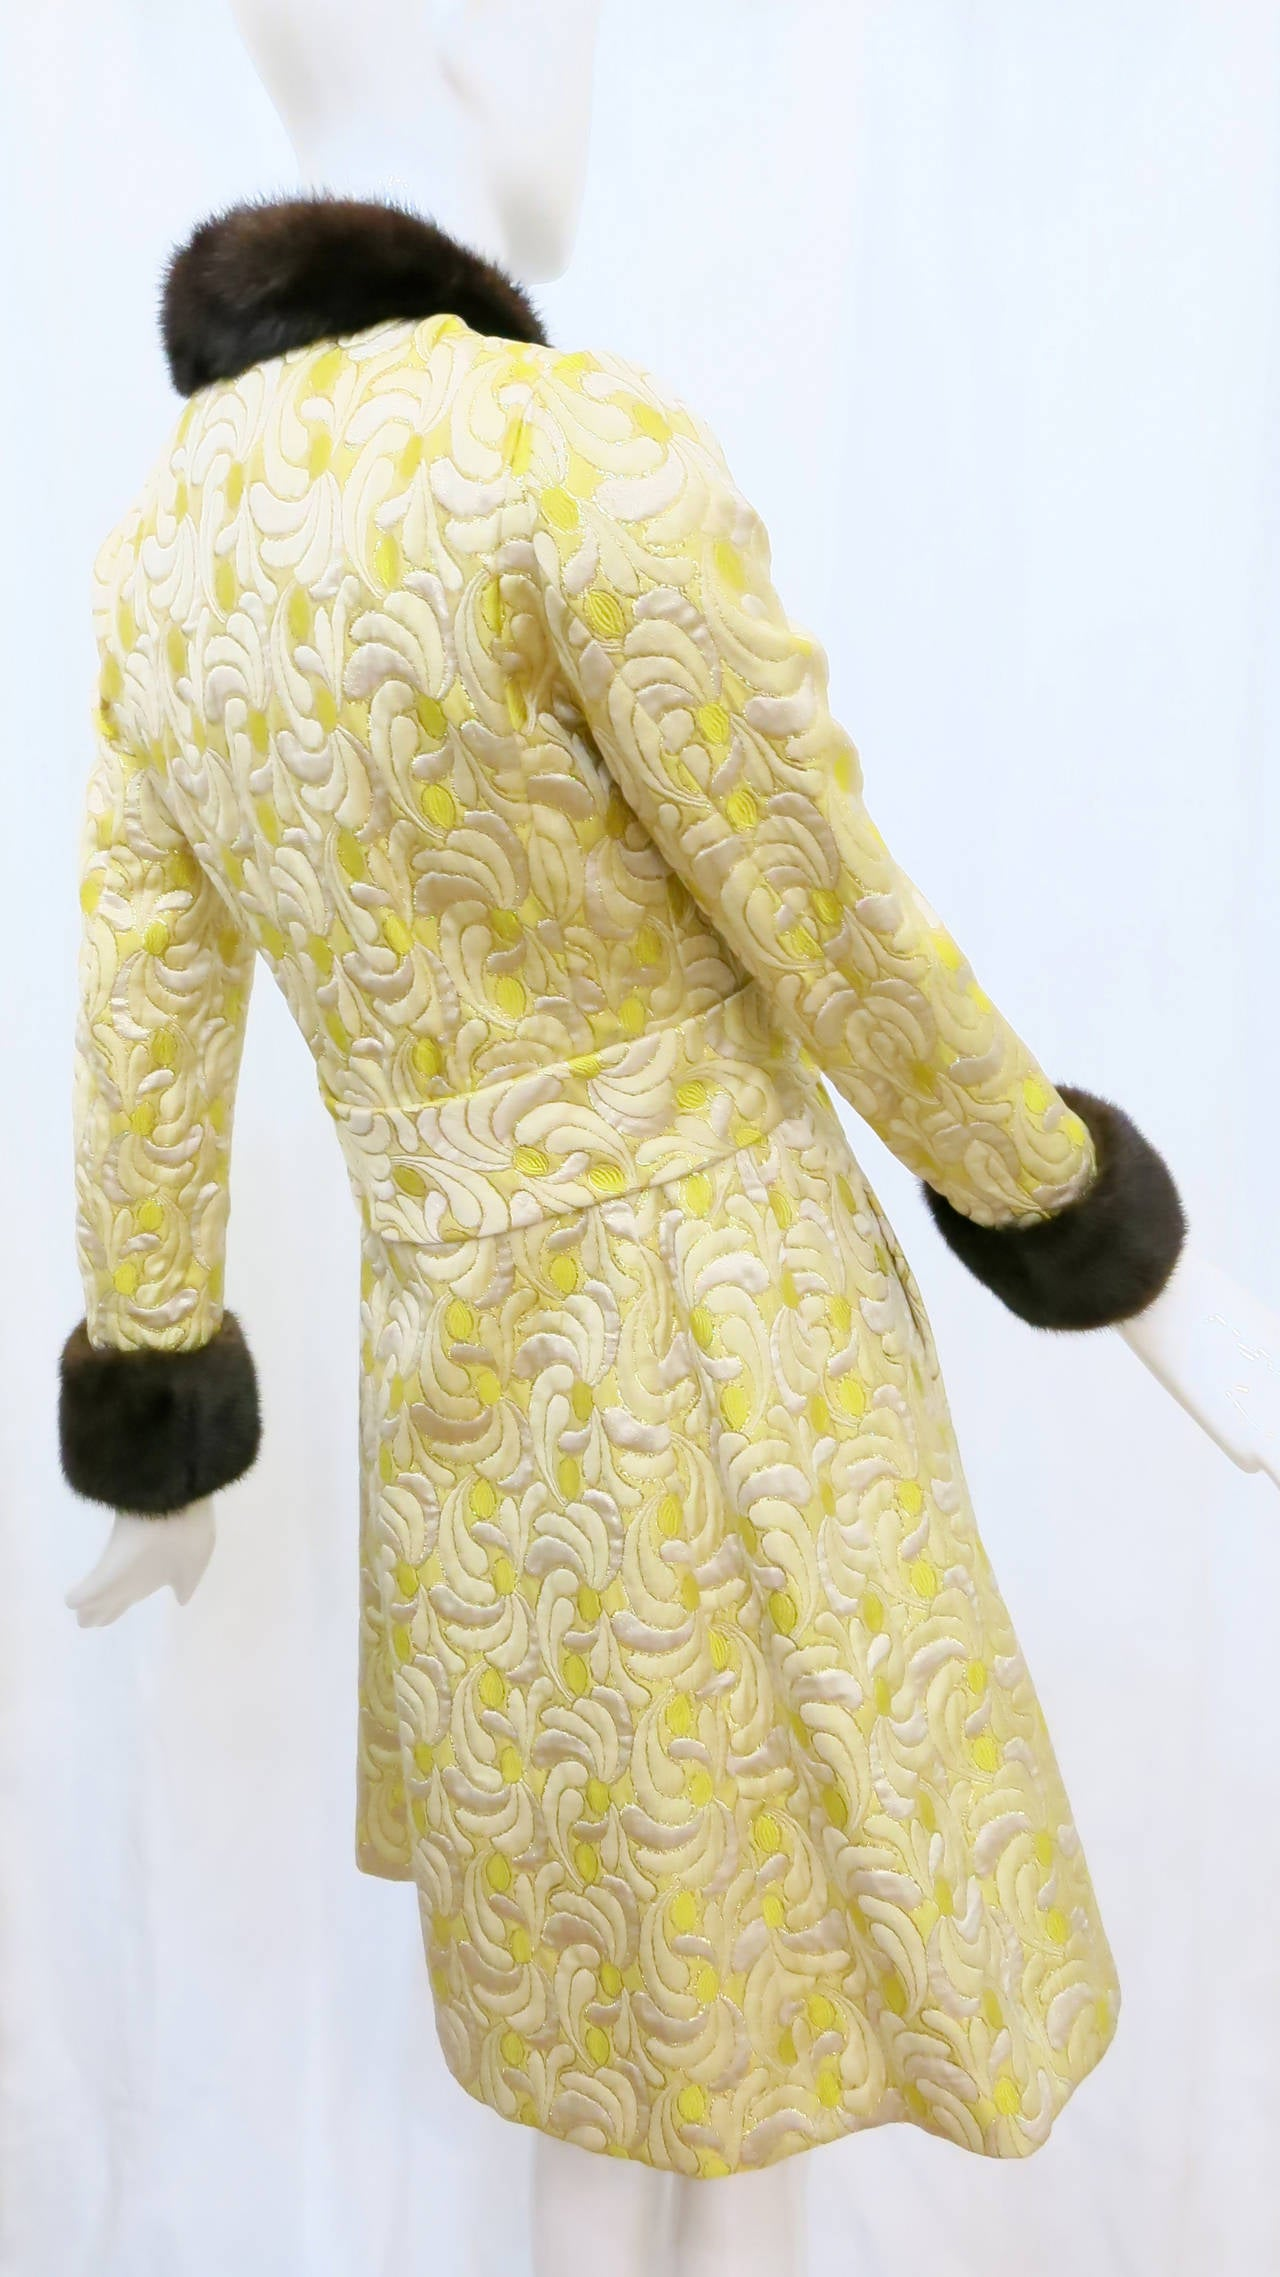 1960s Yellow and Gold Damask Dress and Coat Ensemble with Mink Trim 3